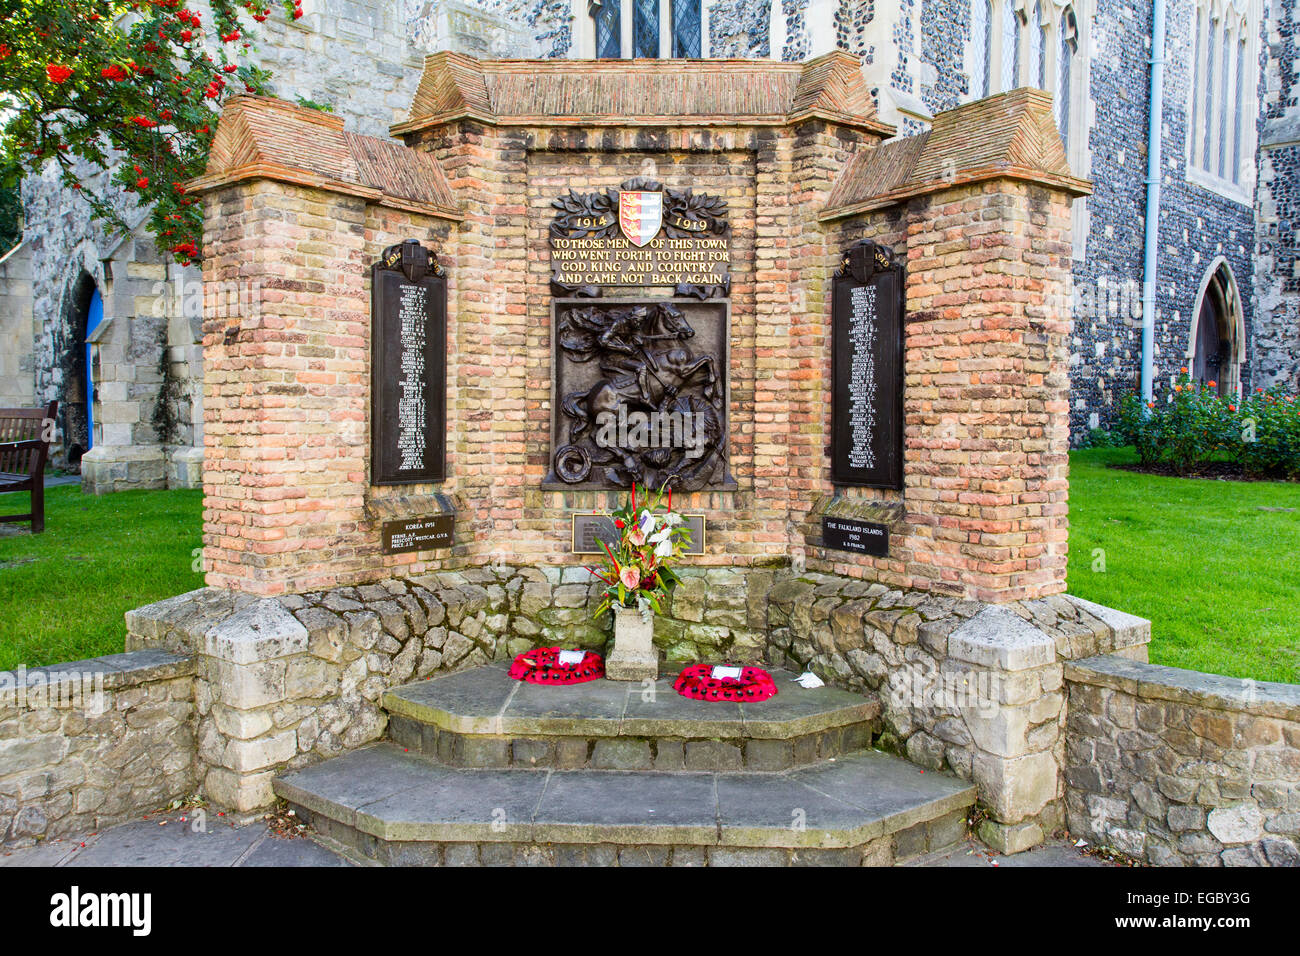 England, Sandwich. Village war memorial with poppy wreaths - Stock Image